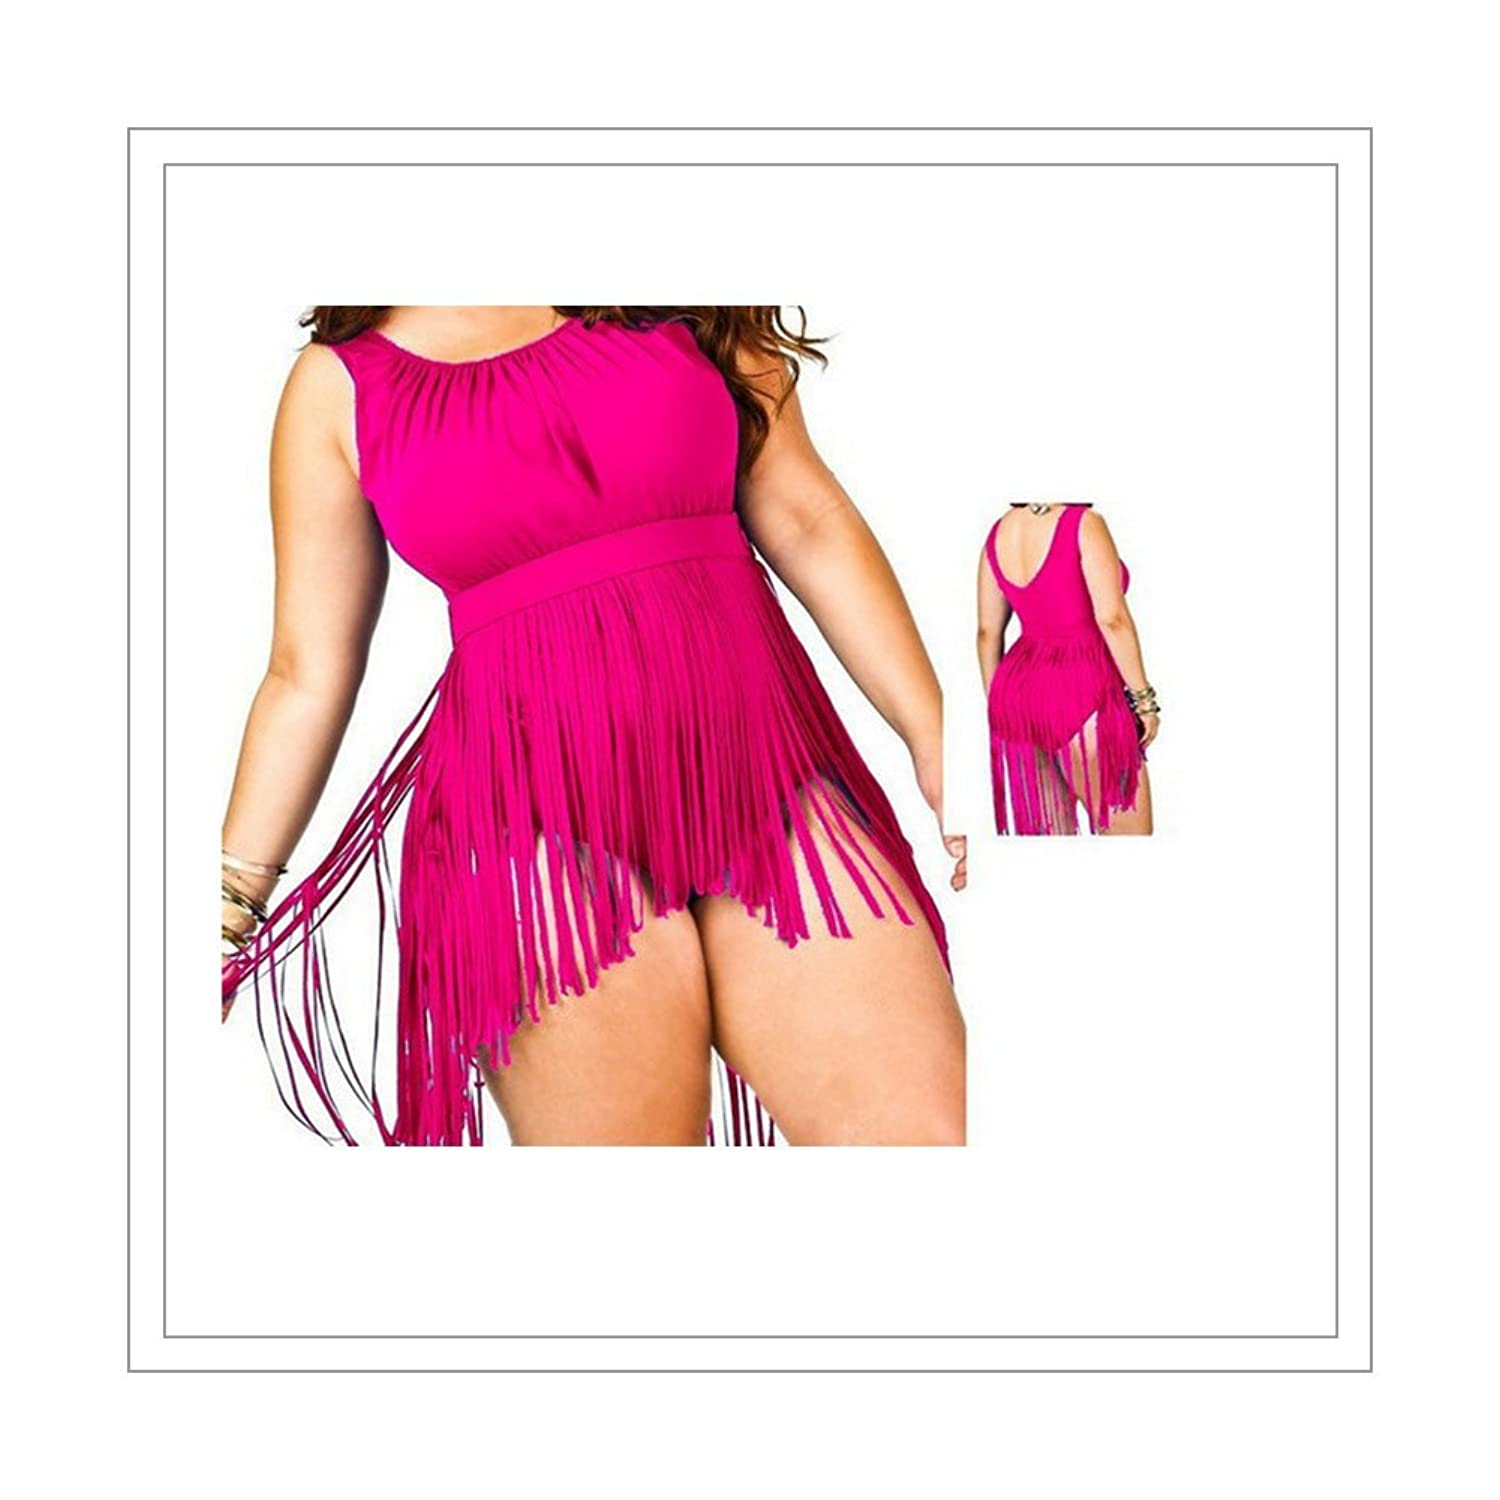 Womens Tassels Bikini One Piece Retro Plus Size Swimsuit Swimwear Rose Red, Rose-Red, X-Large